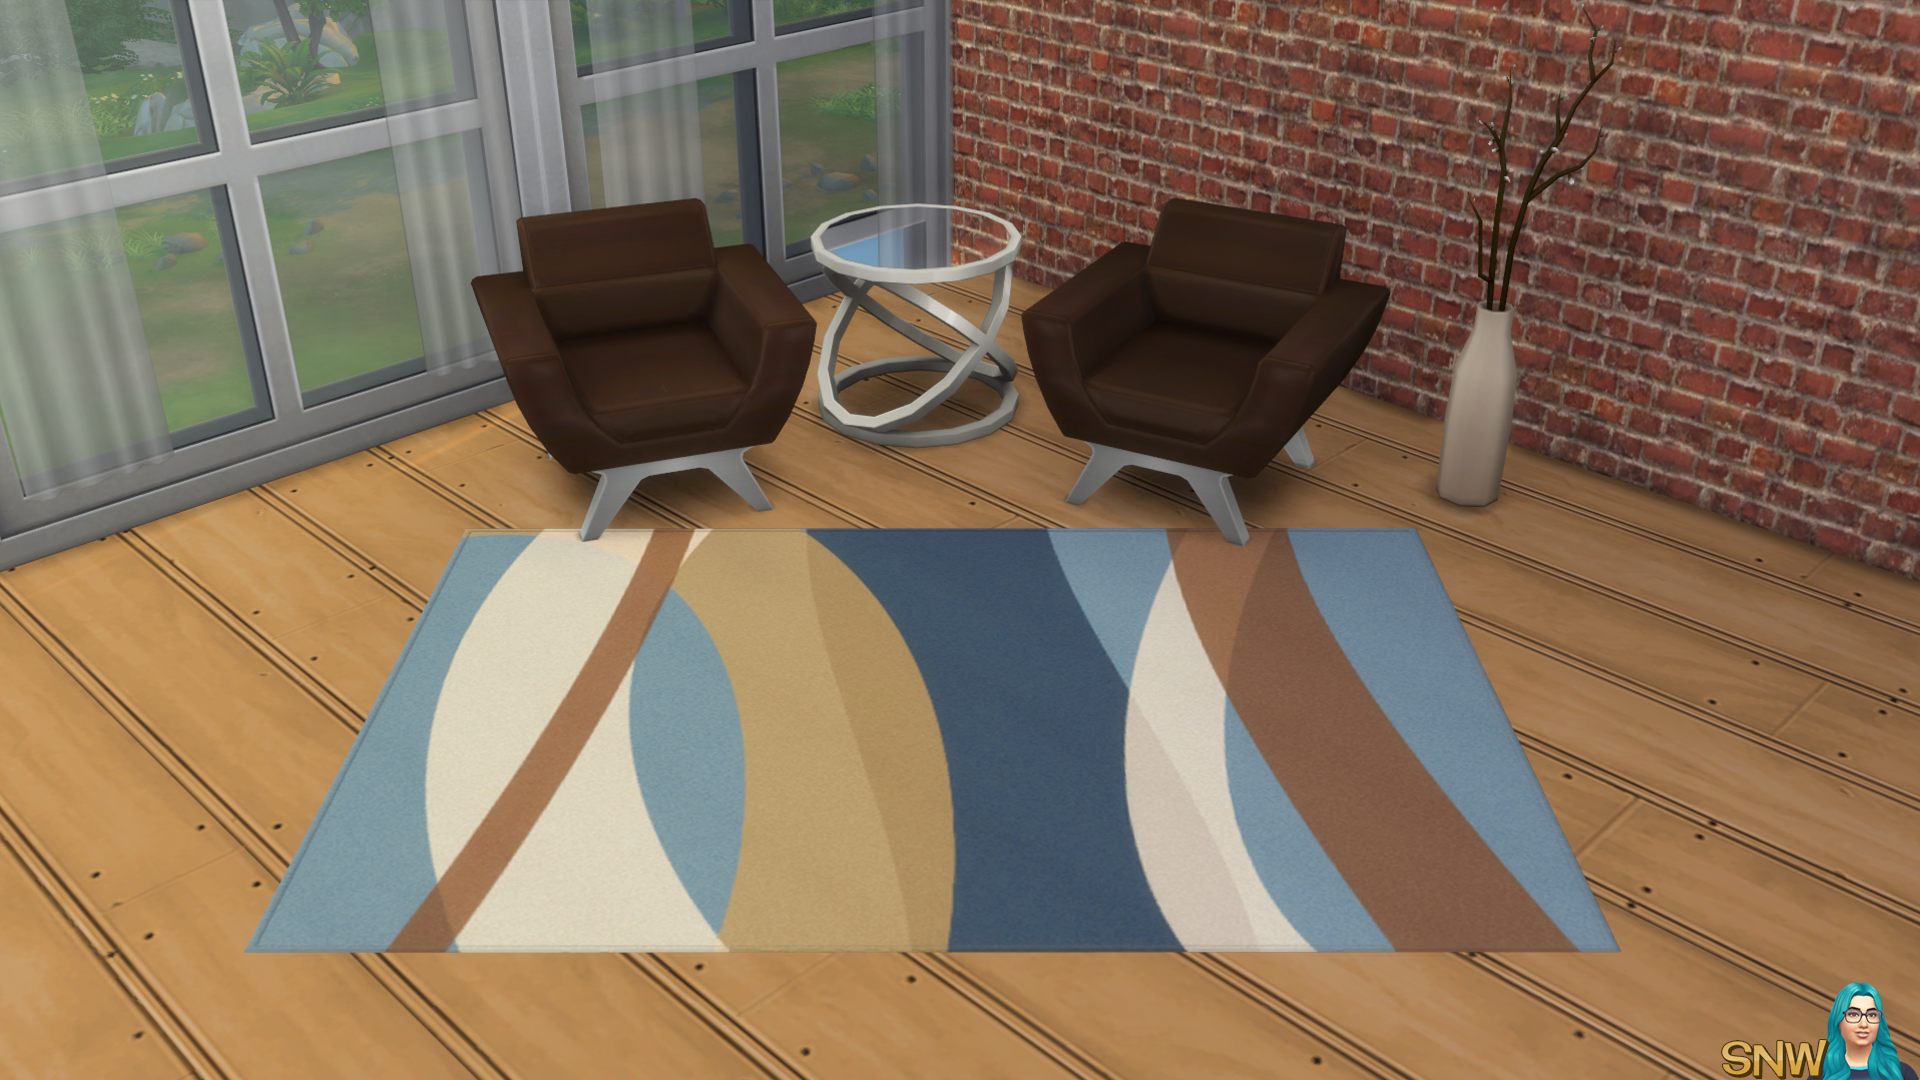 Abstract Rugs 3x2 Snw Simsnetwork Com